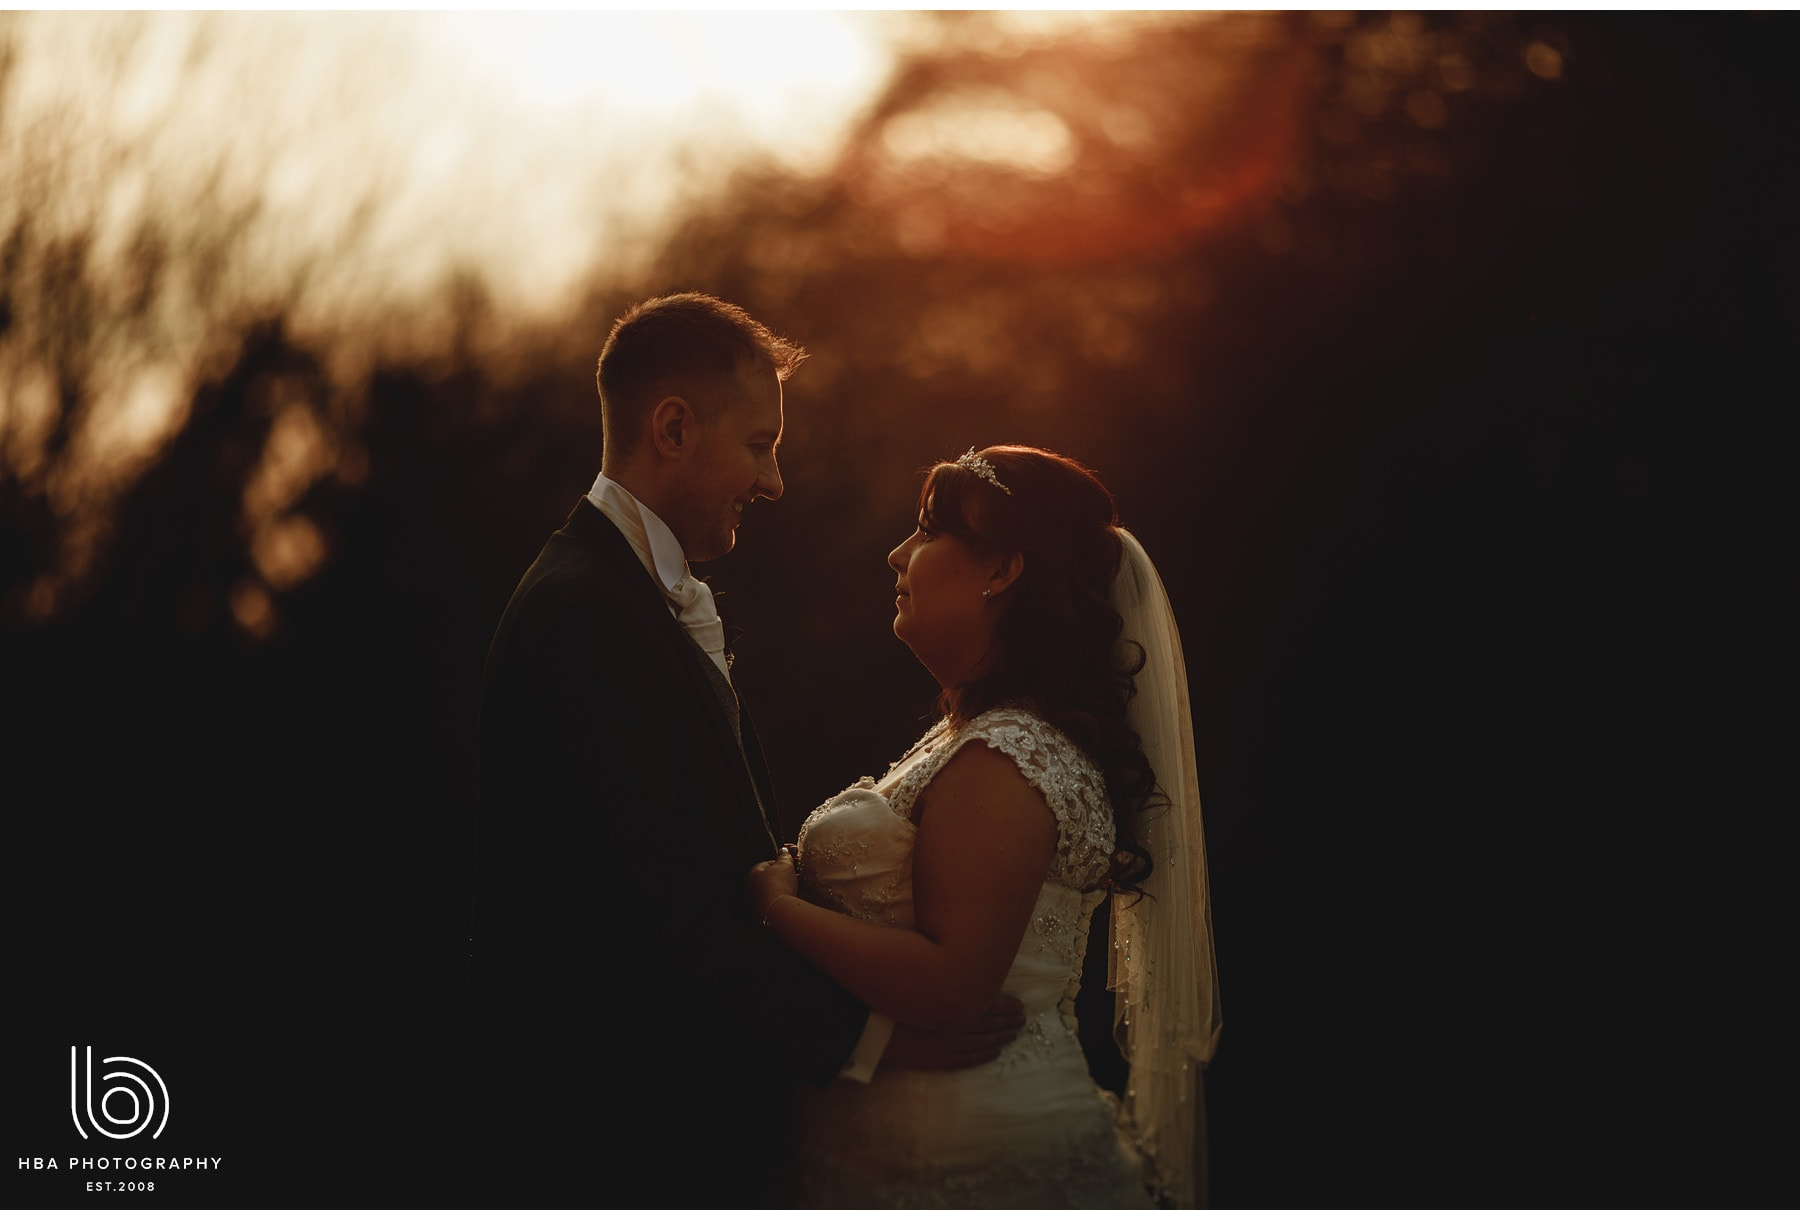 the bride and groom at dusk